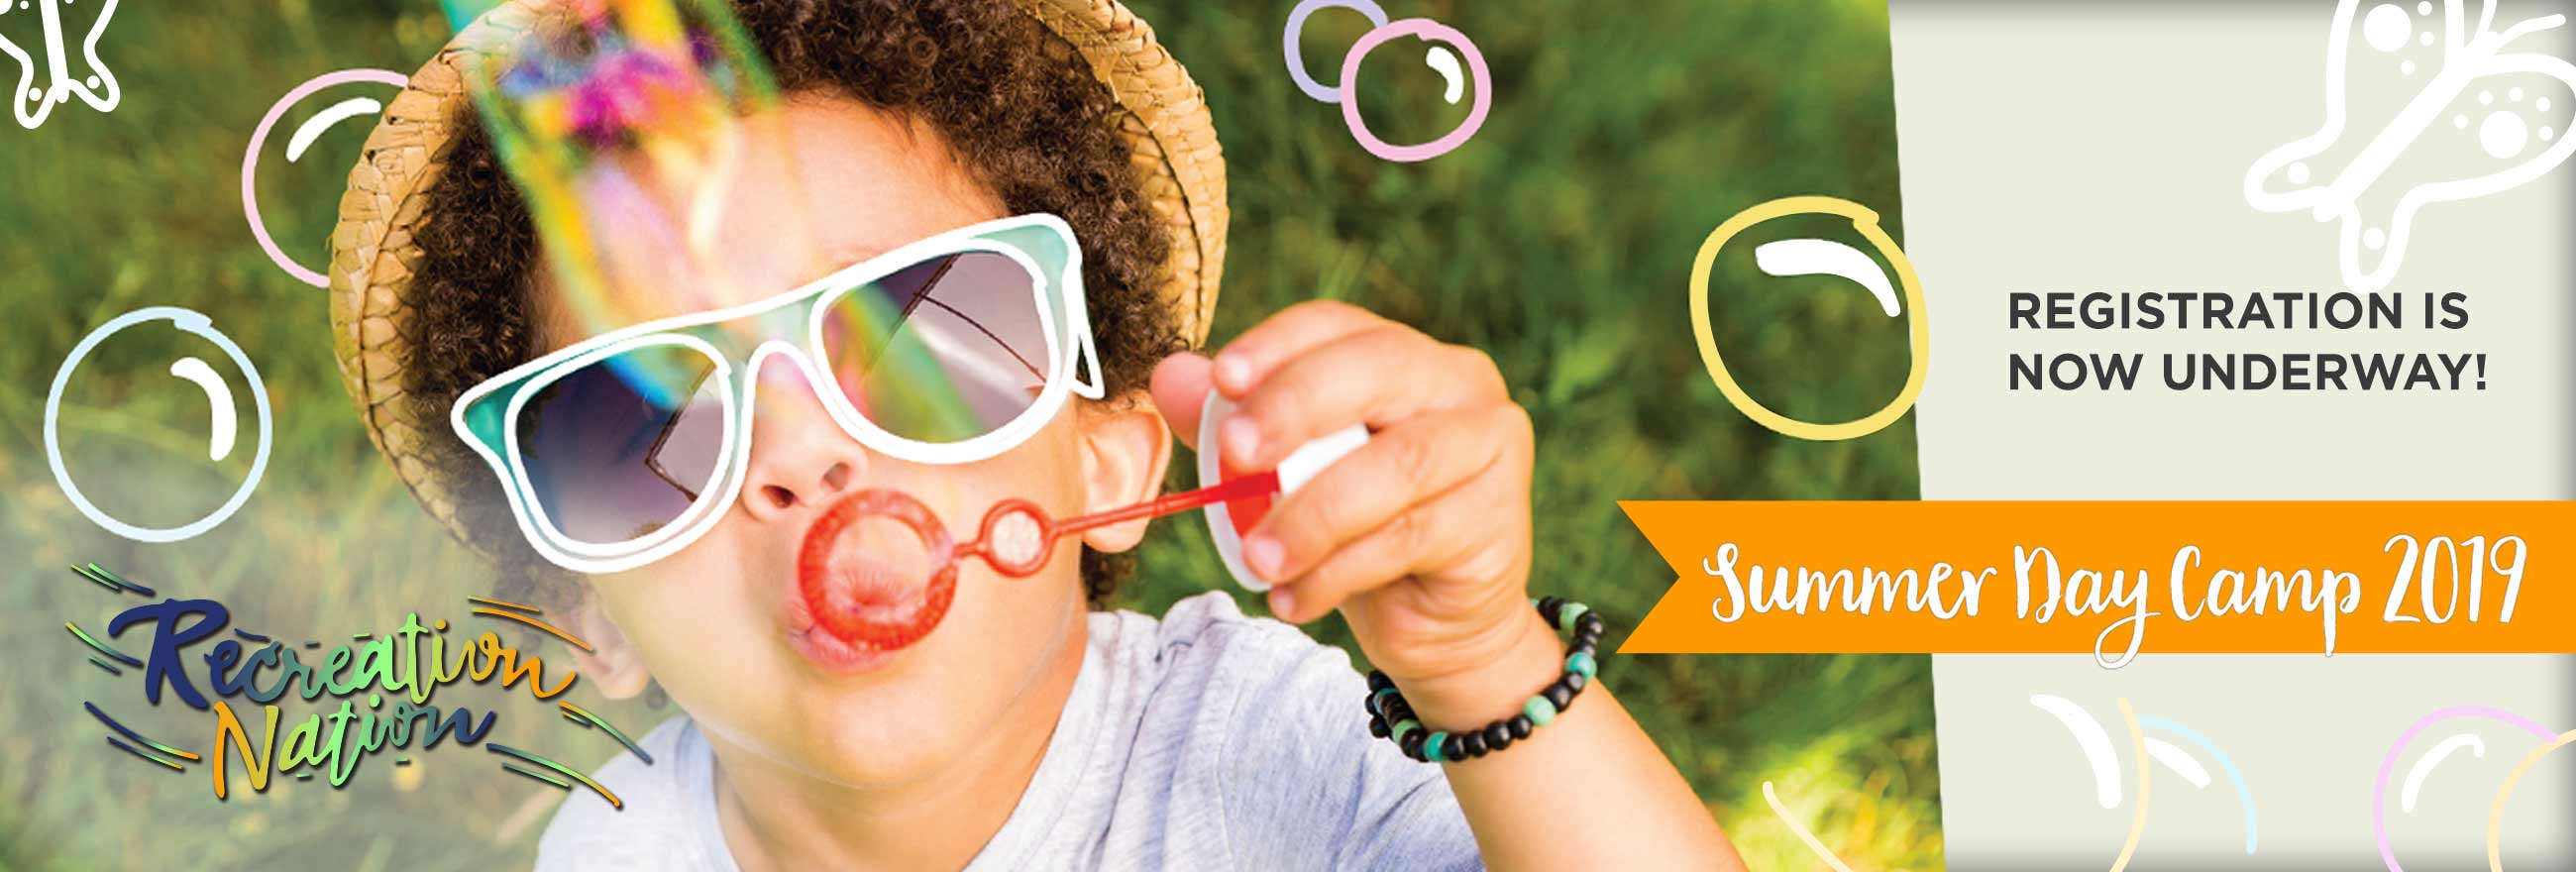 Browse the 2019 Summer Day Camp brochure